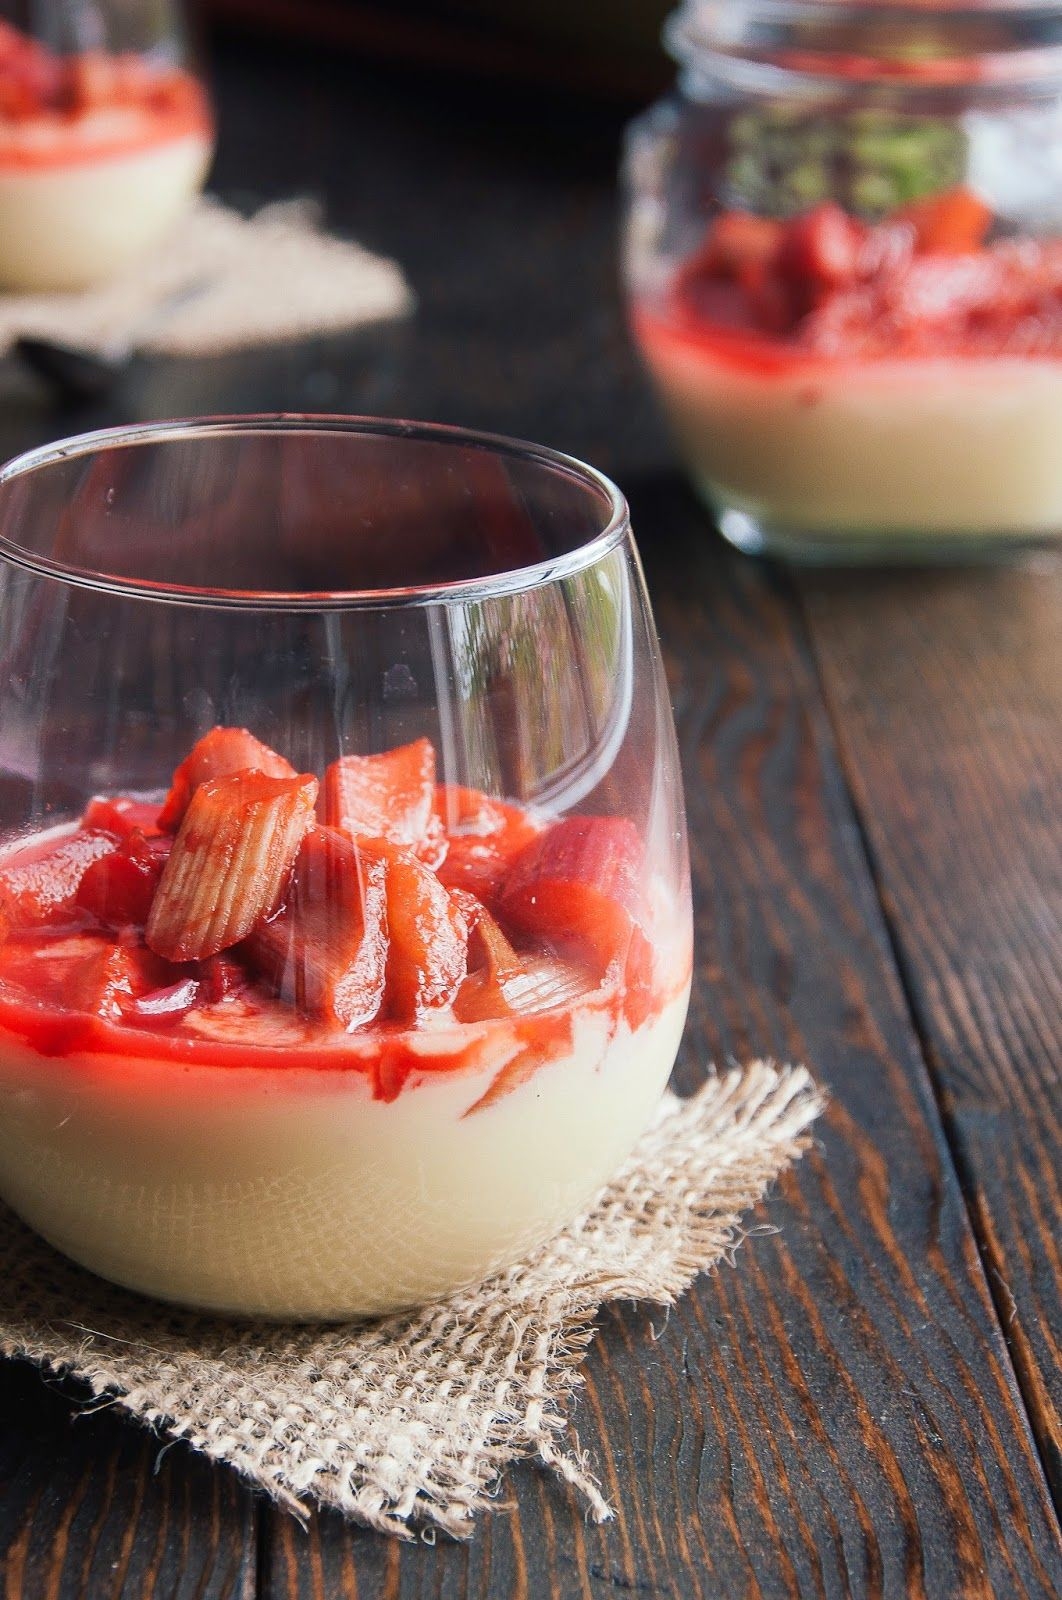 Ginger White Chocolate Mousse with Honey Roasted Rhubarb.